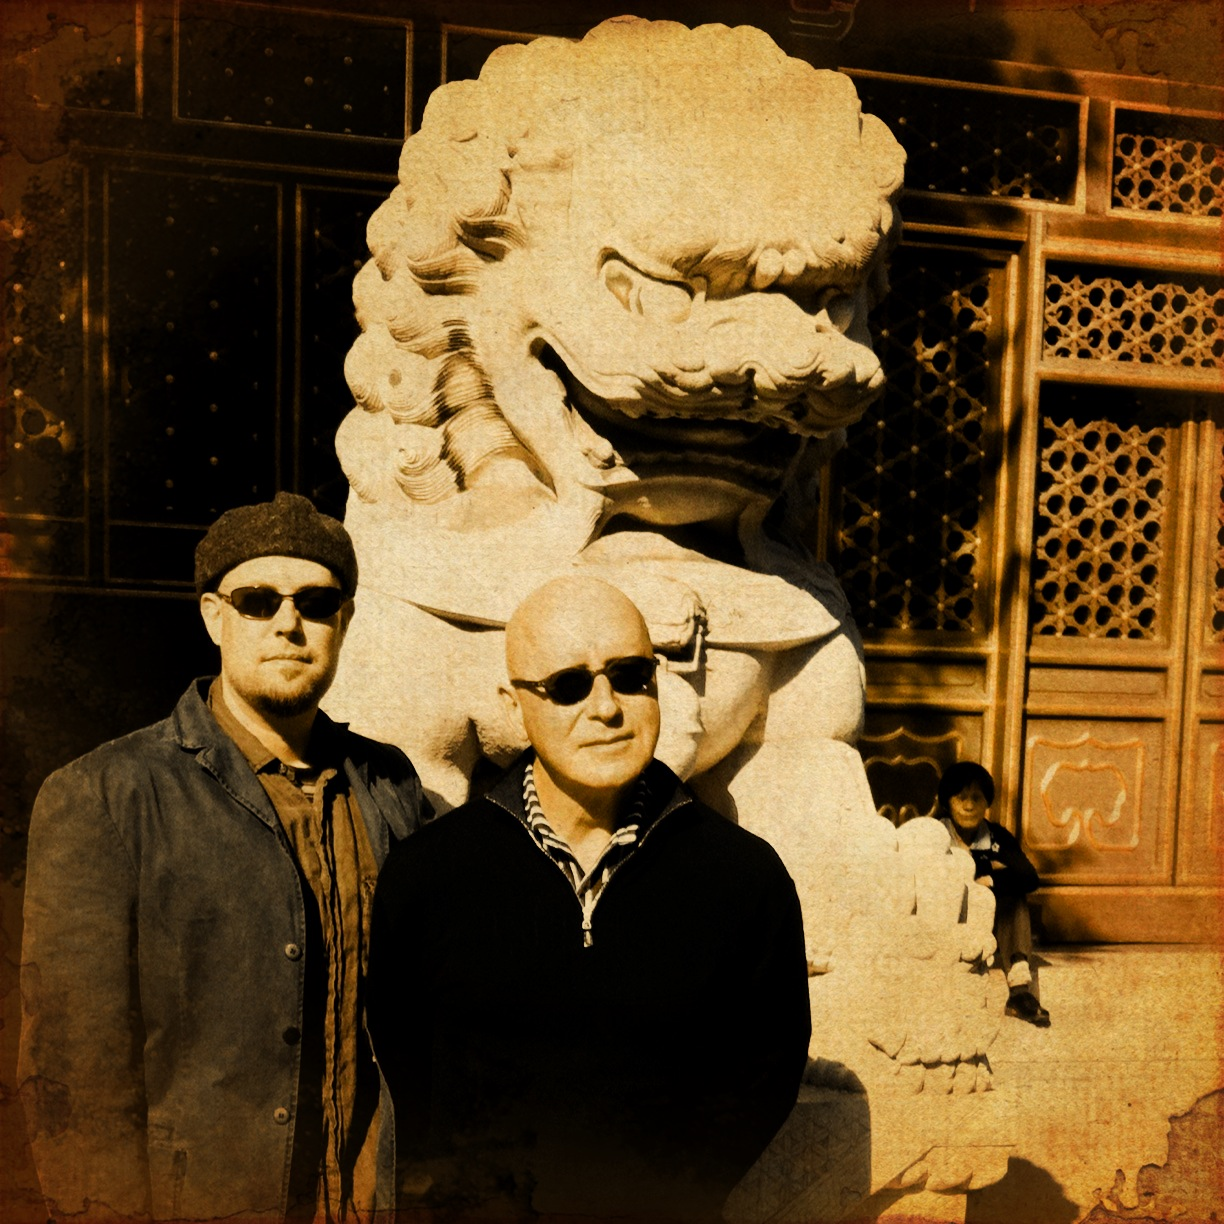 With Brian O'Reilly, Beijing Central Conservatory, 2012